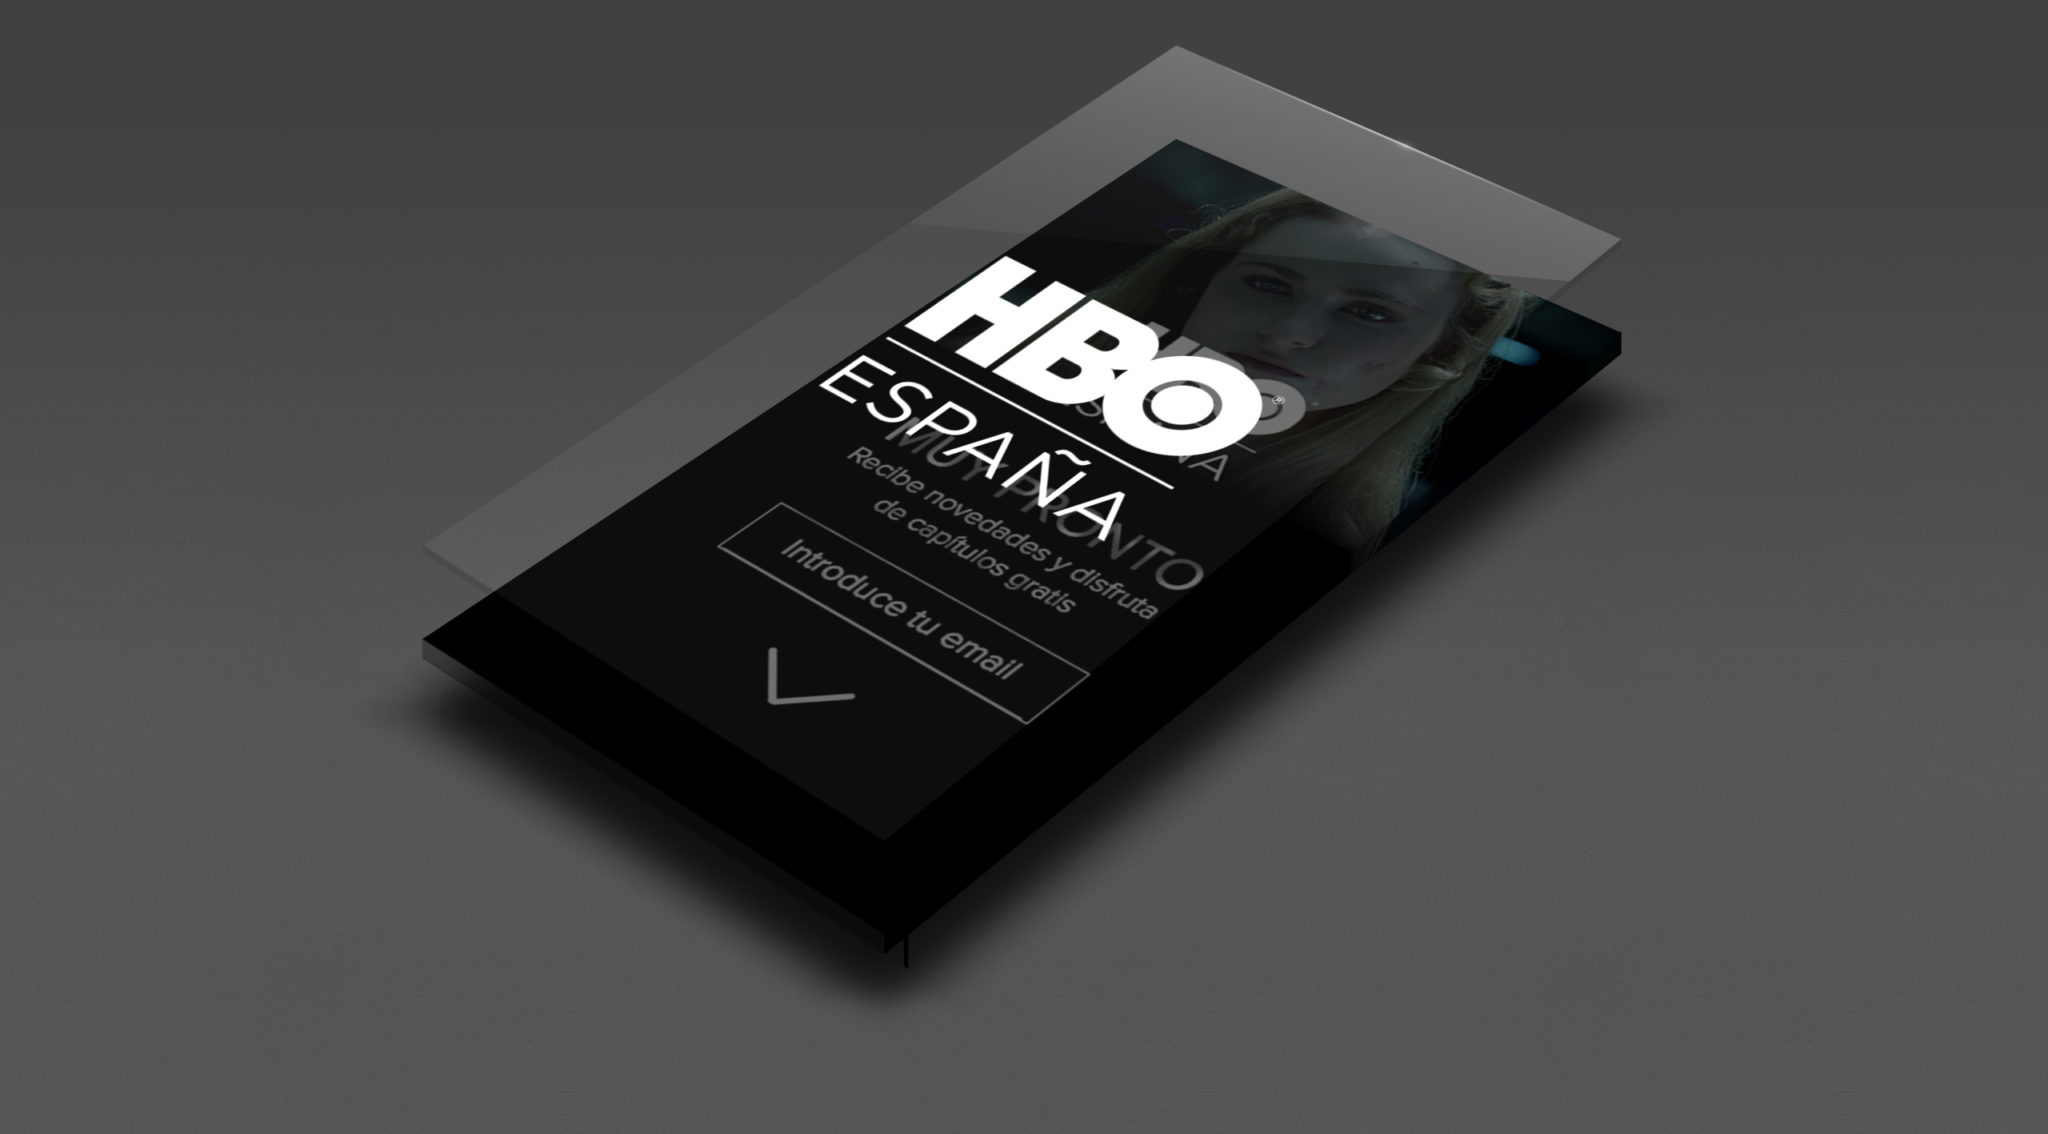 HBO_005